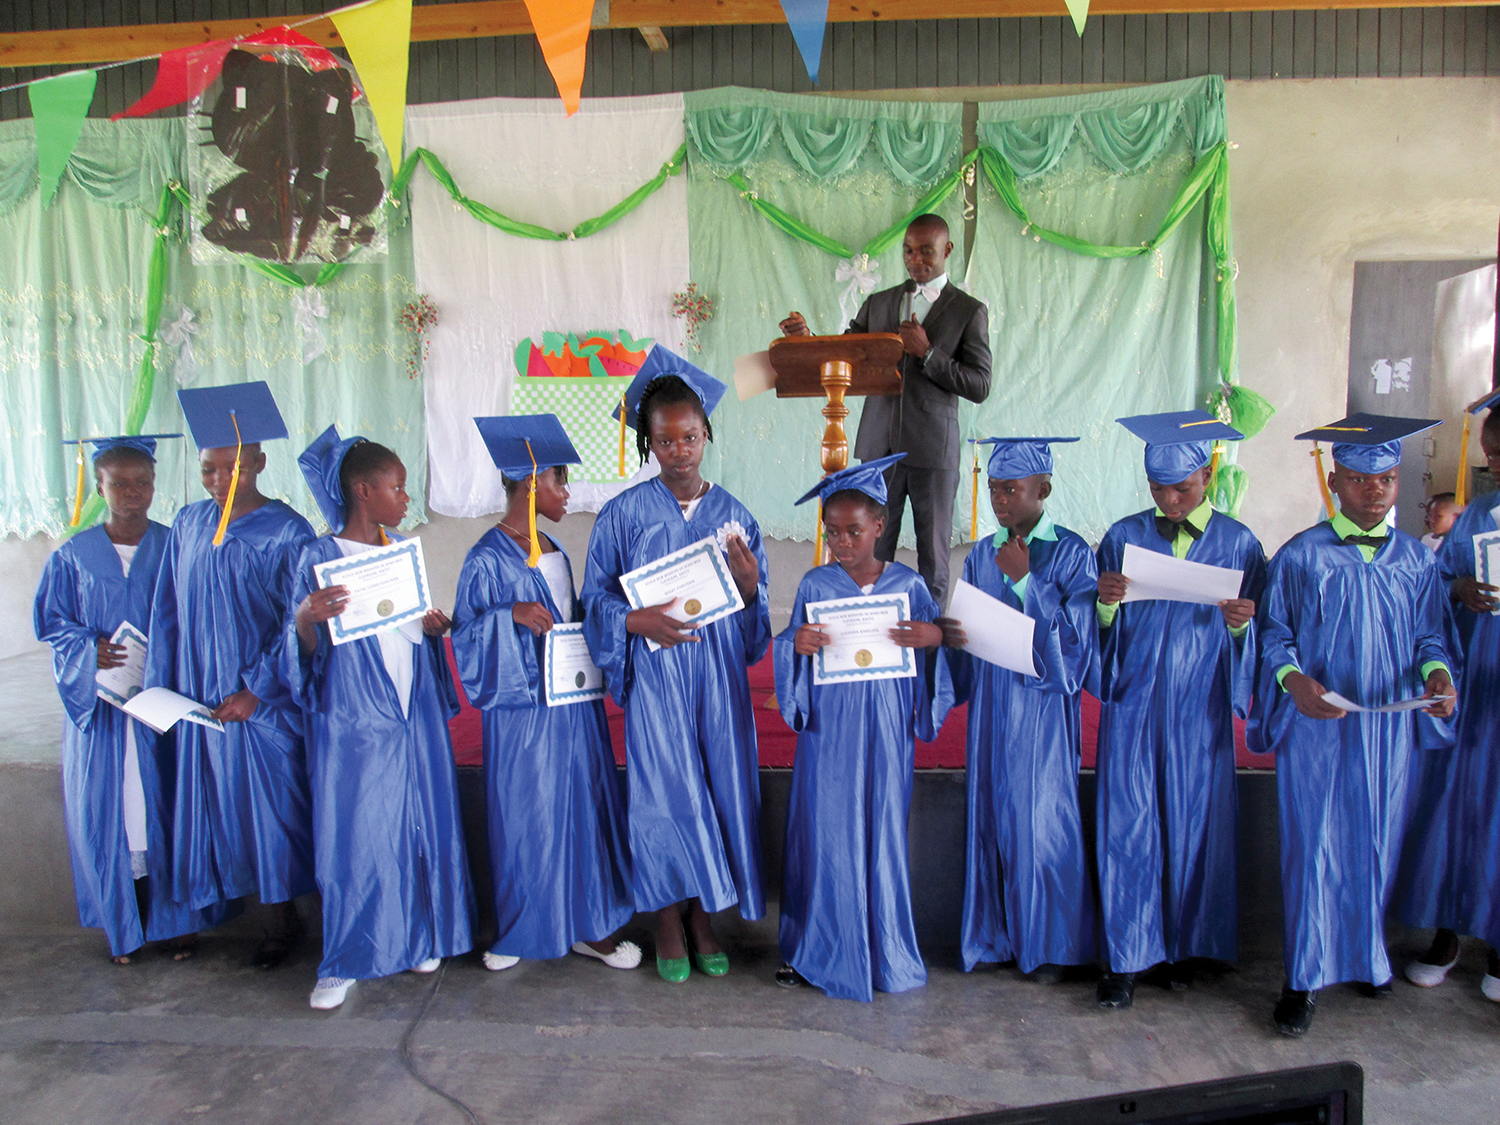 Pastor Yaguel, graduate from the class of 2005, celebrates sixth graders reaching the milestone of graduating primary school in Haiti.